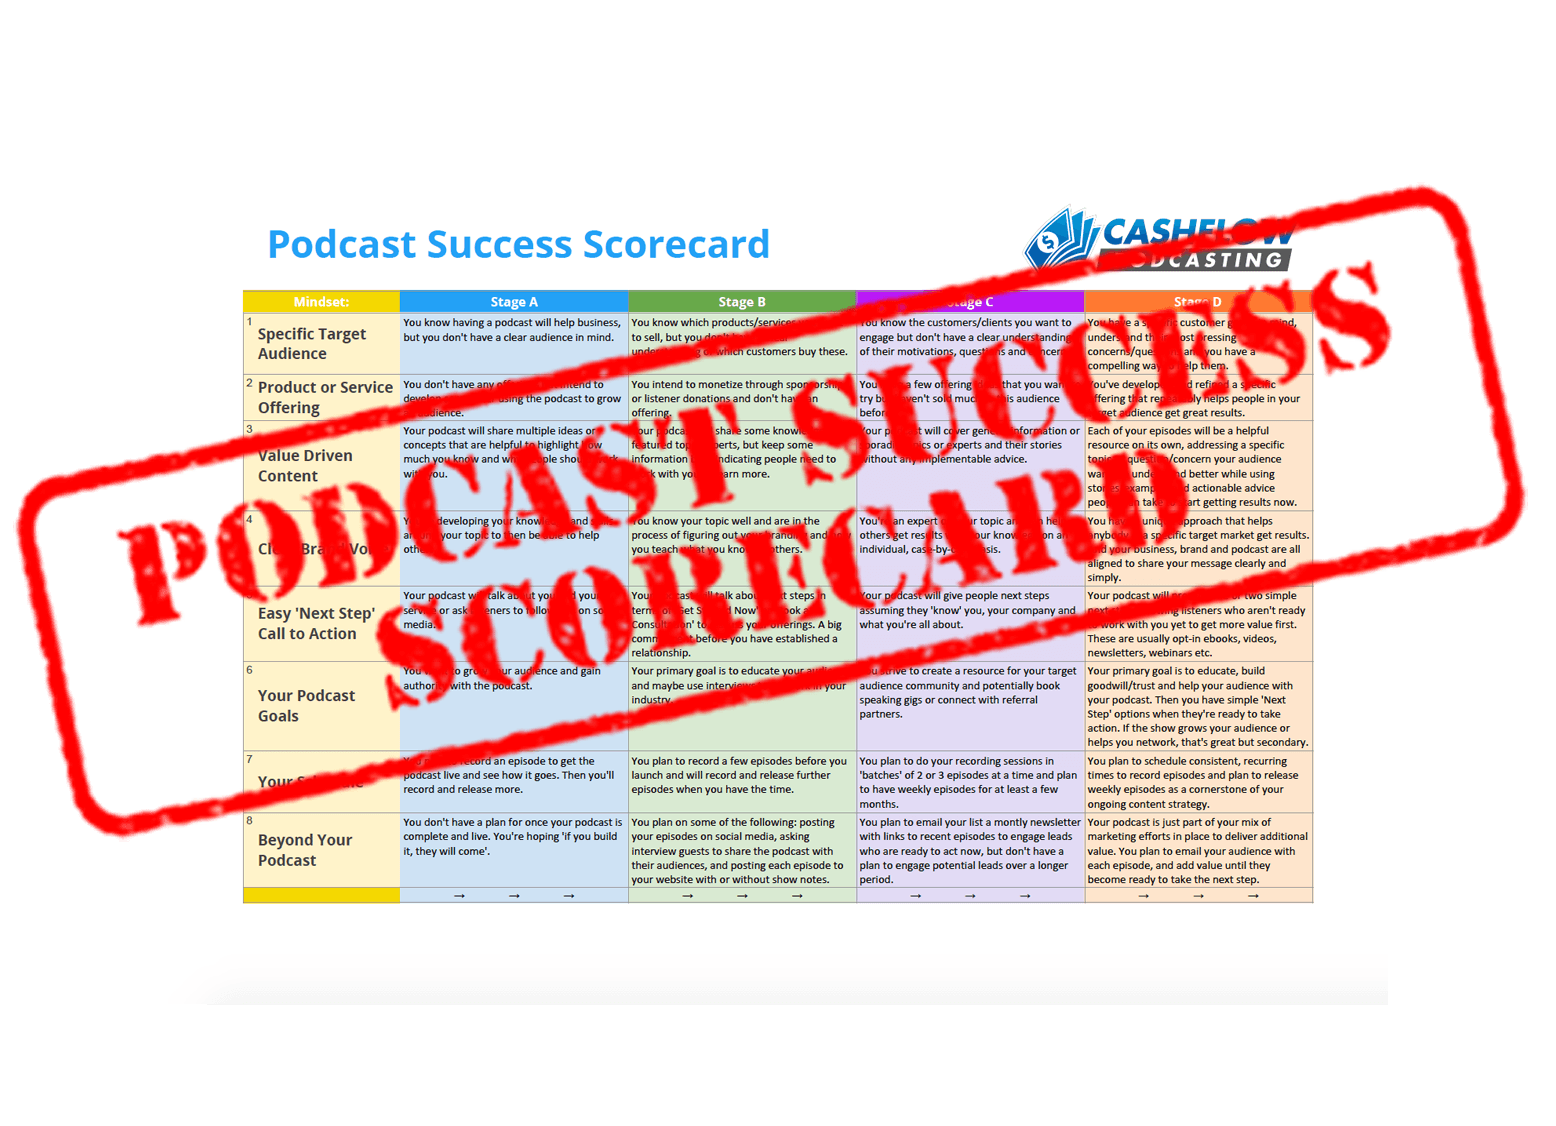 The Podcast Success Scorecard